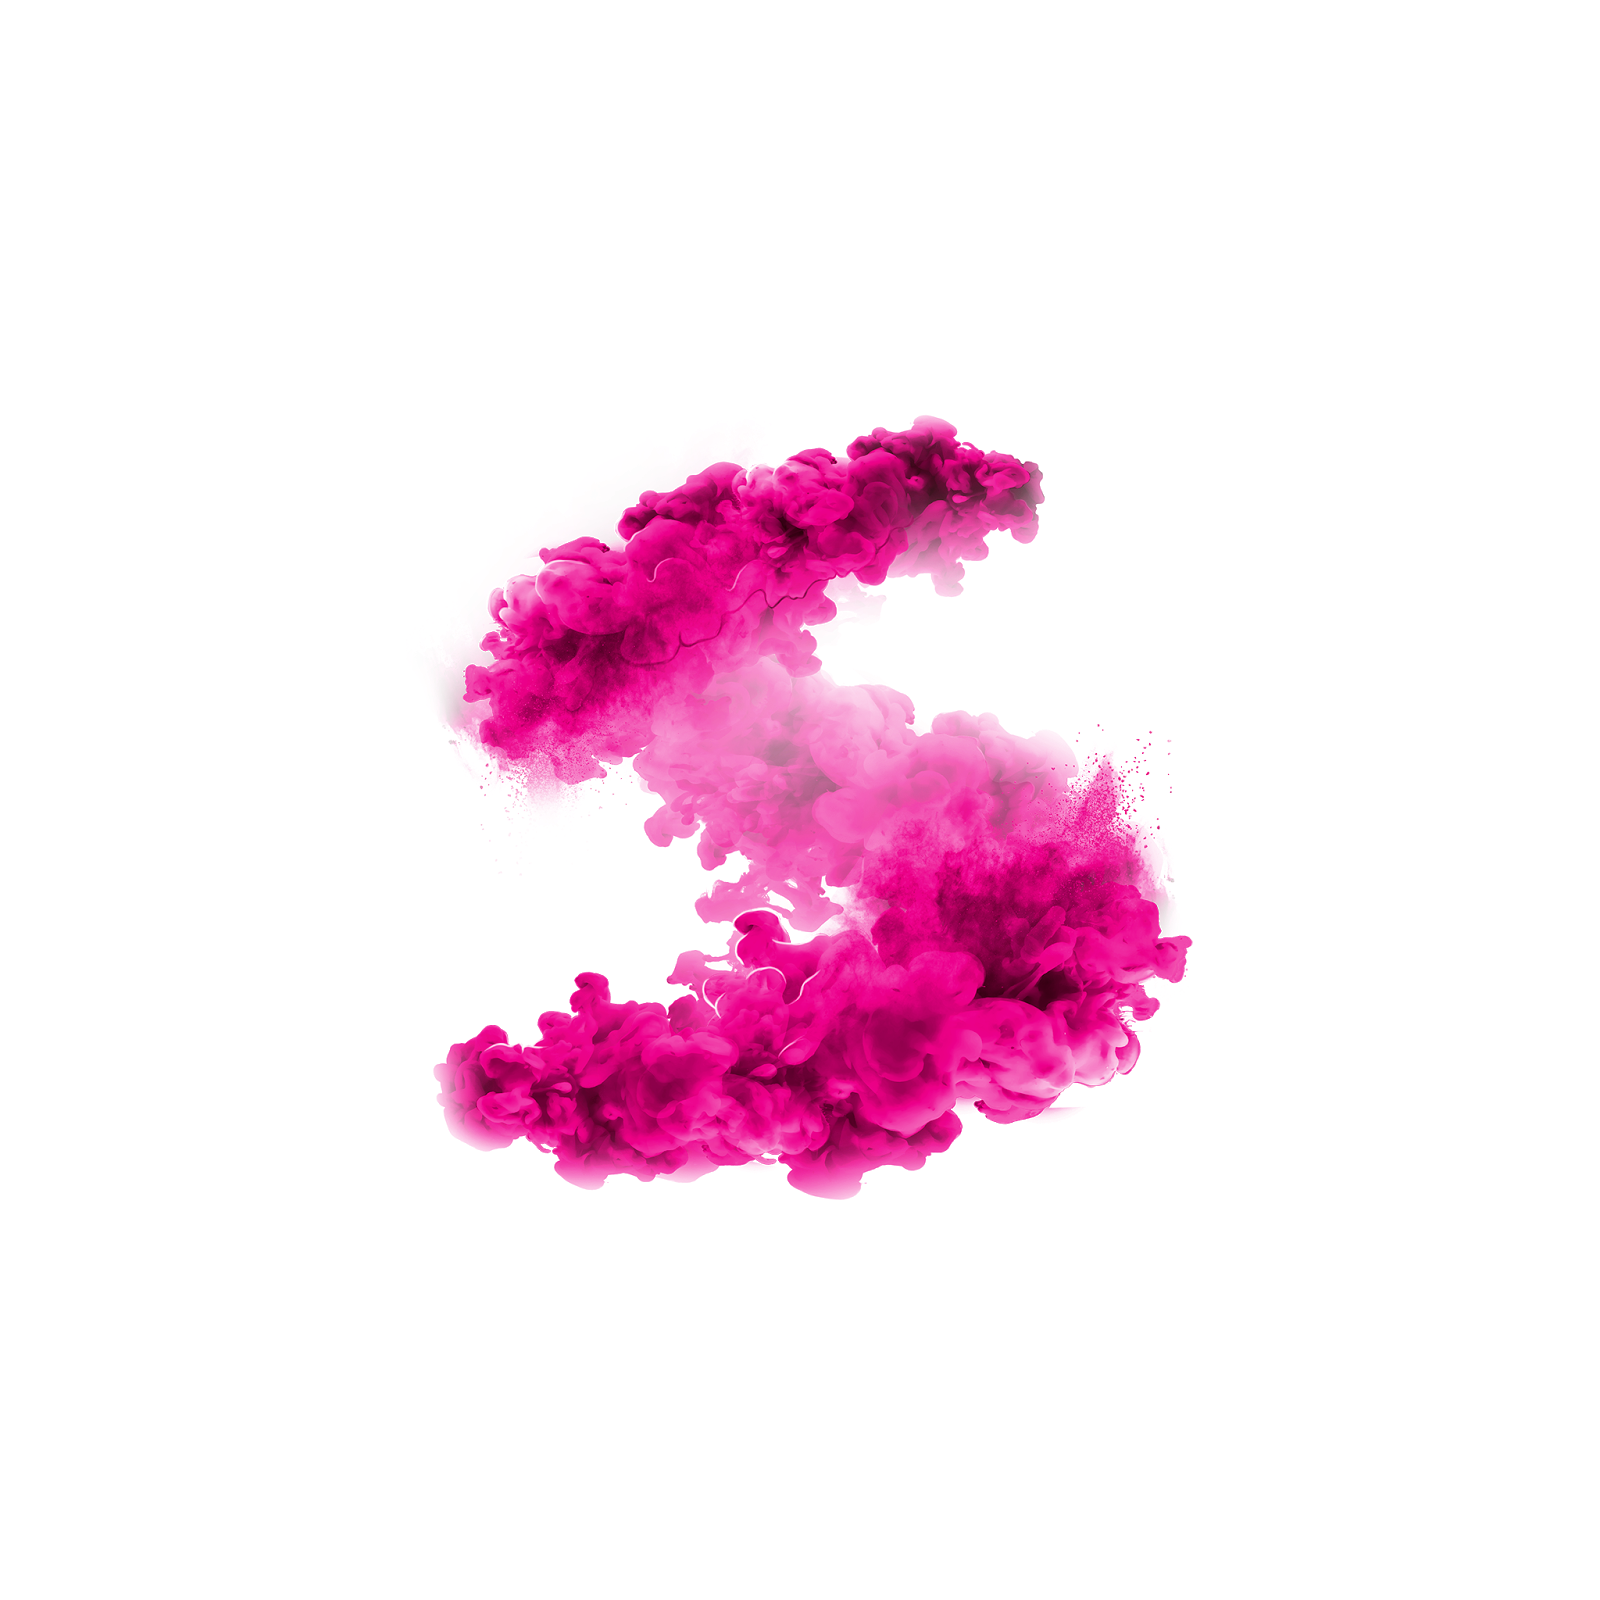 Pink smoke png. Magic fire flame paint